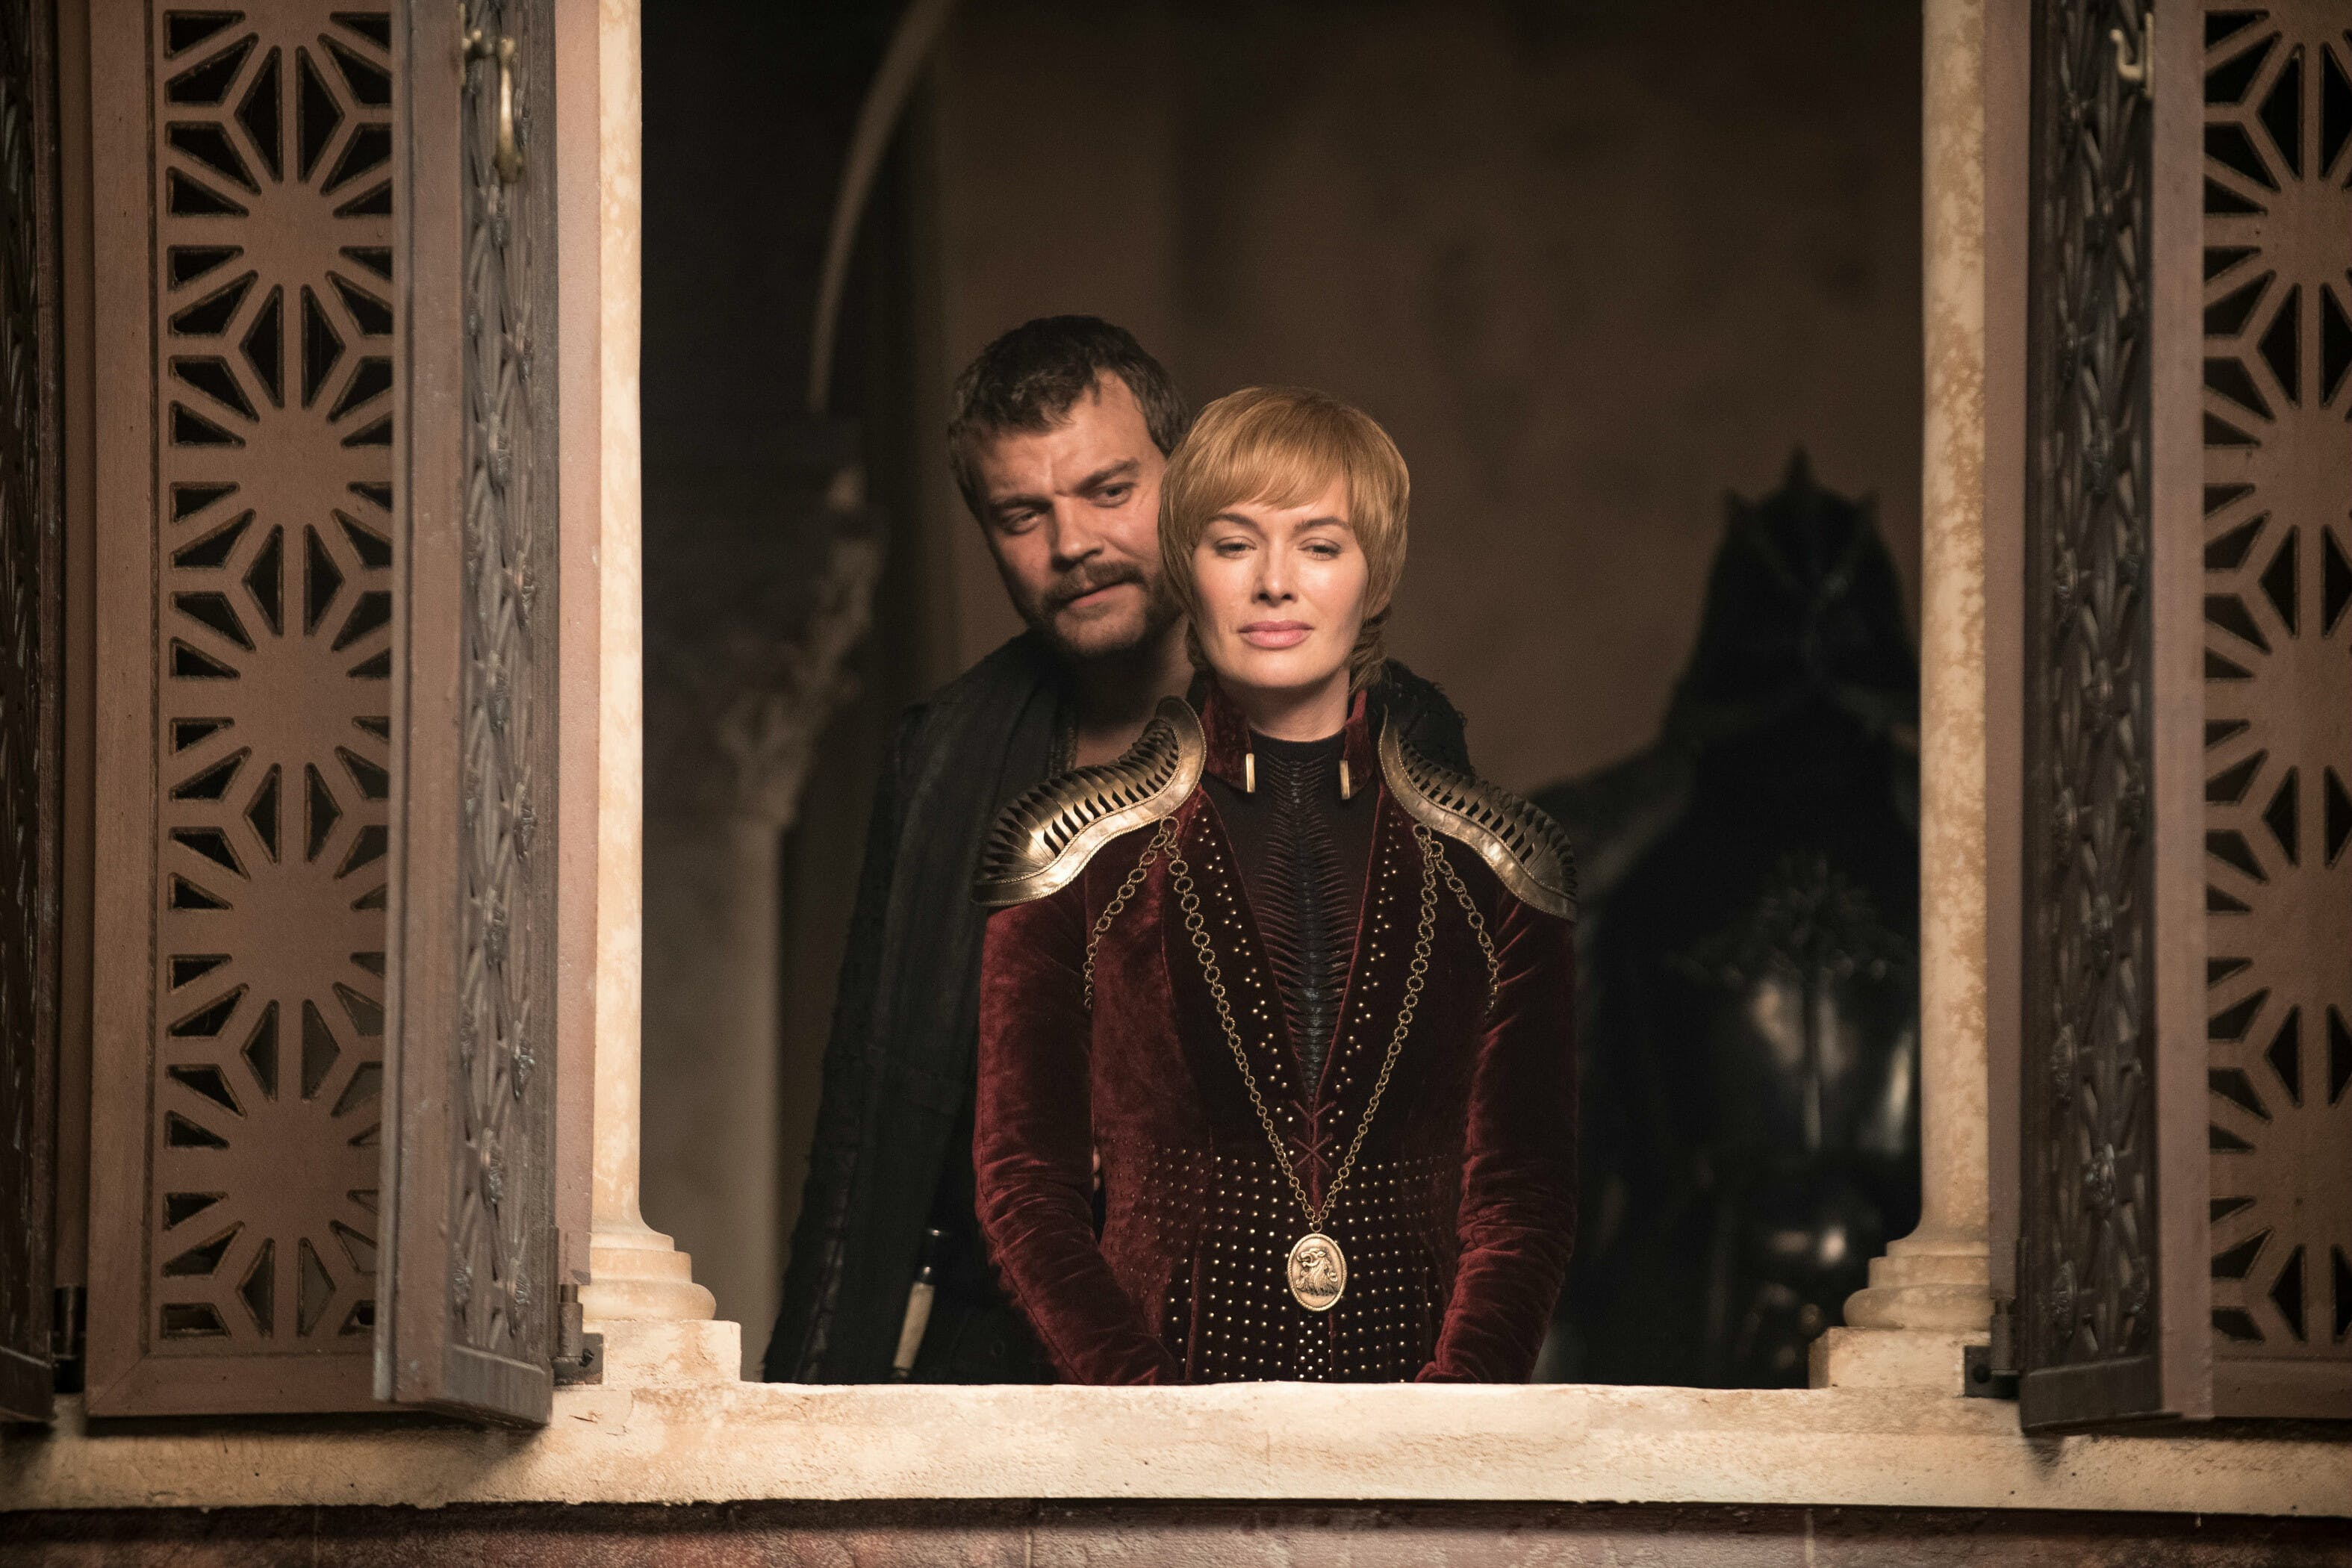 Game of Thrones armies - Cersei Lannister